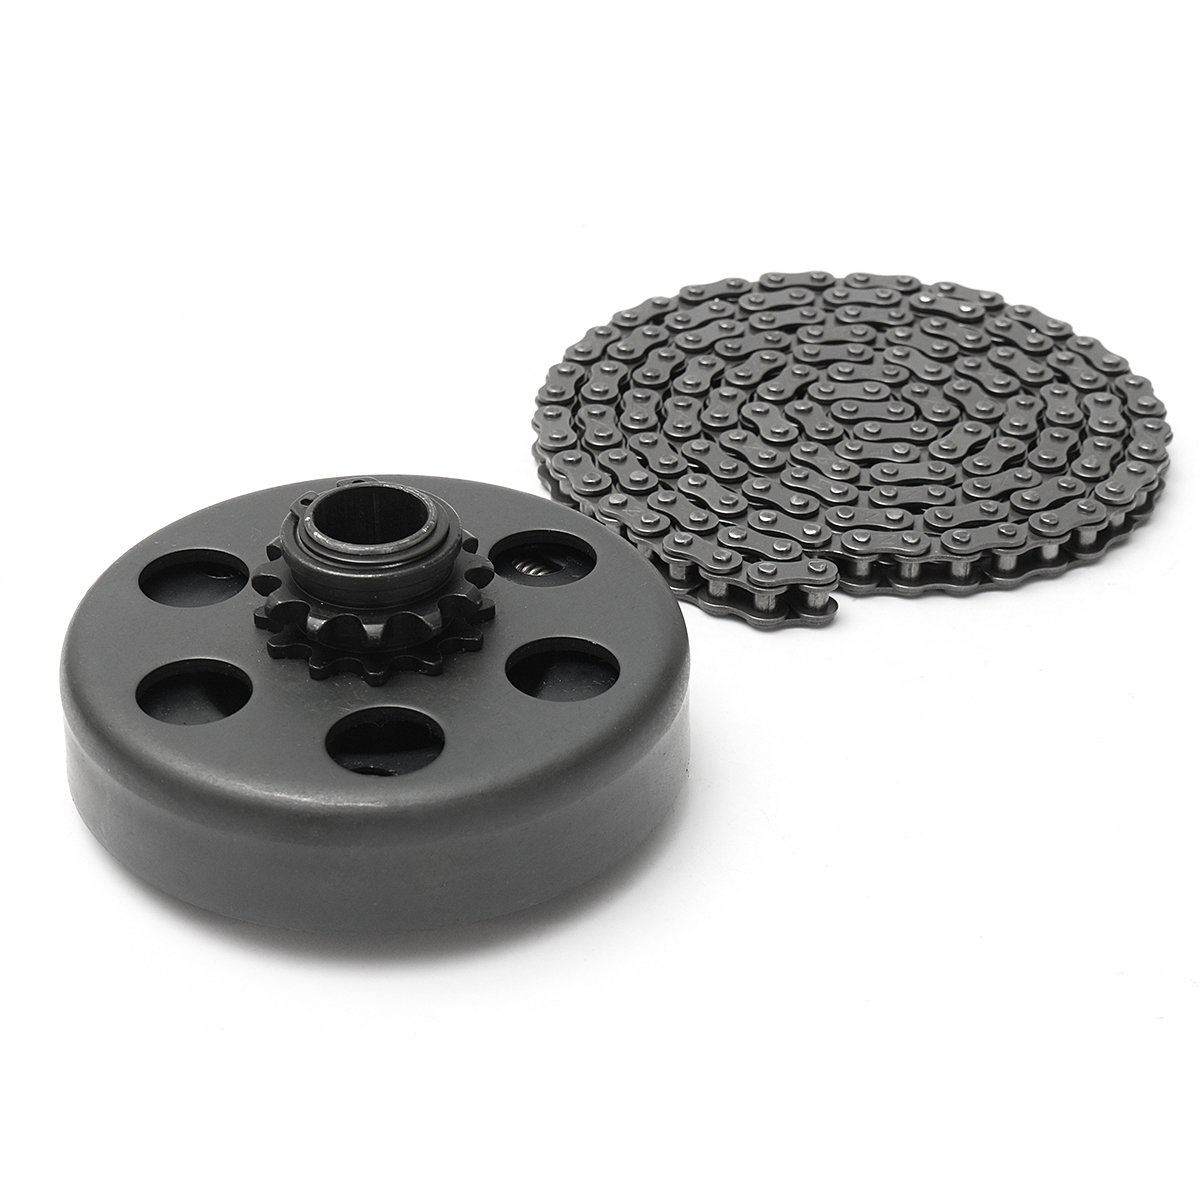 3/4inch bore centrifugal clutch 12 tooth #35 chain screw